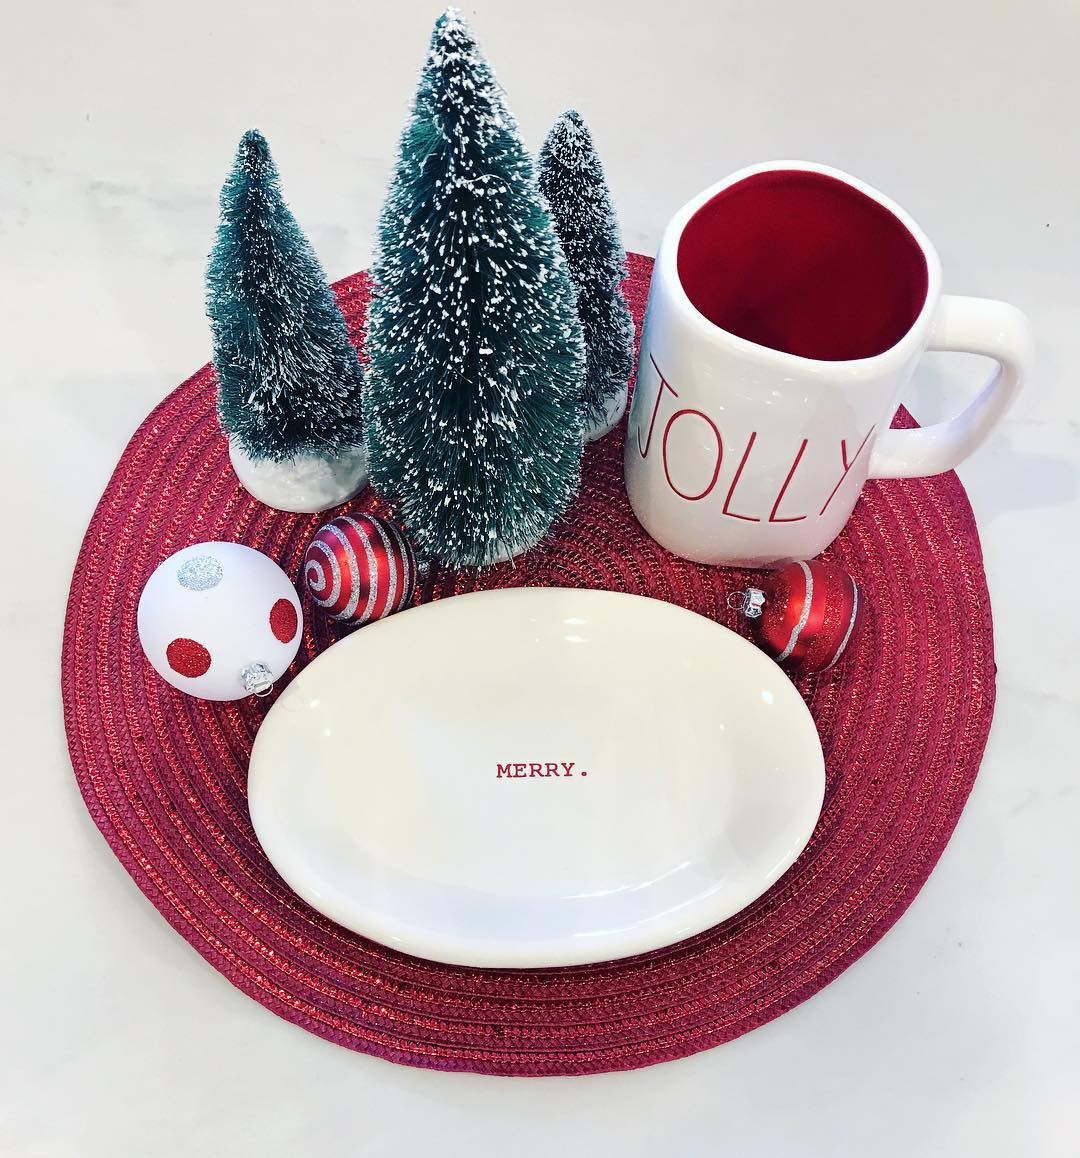 Charismatic red and white home decor with little brush Christmas tree.